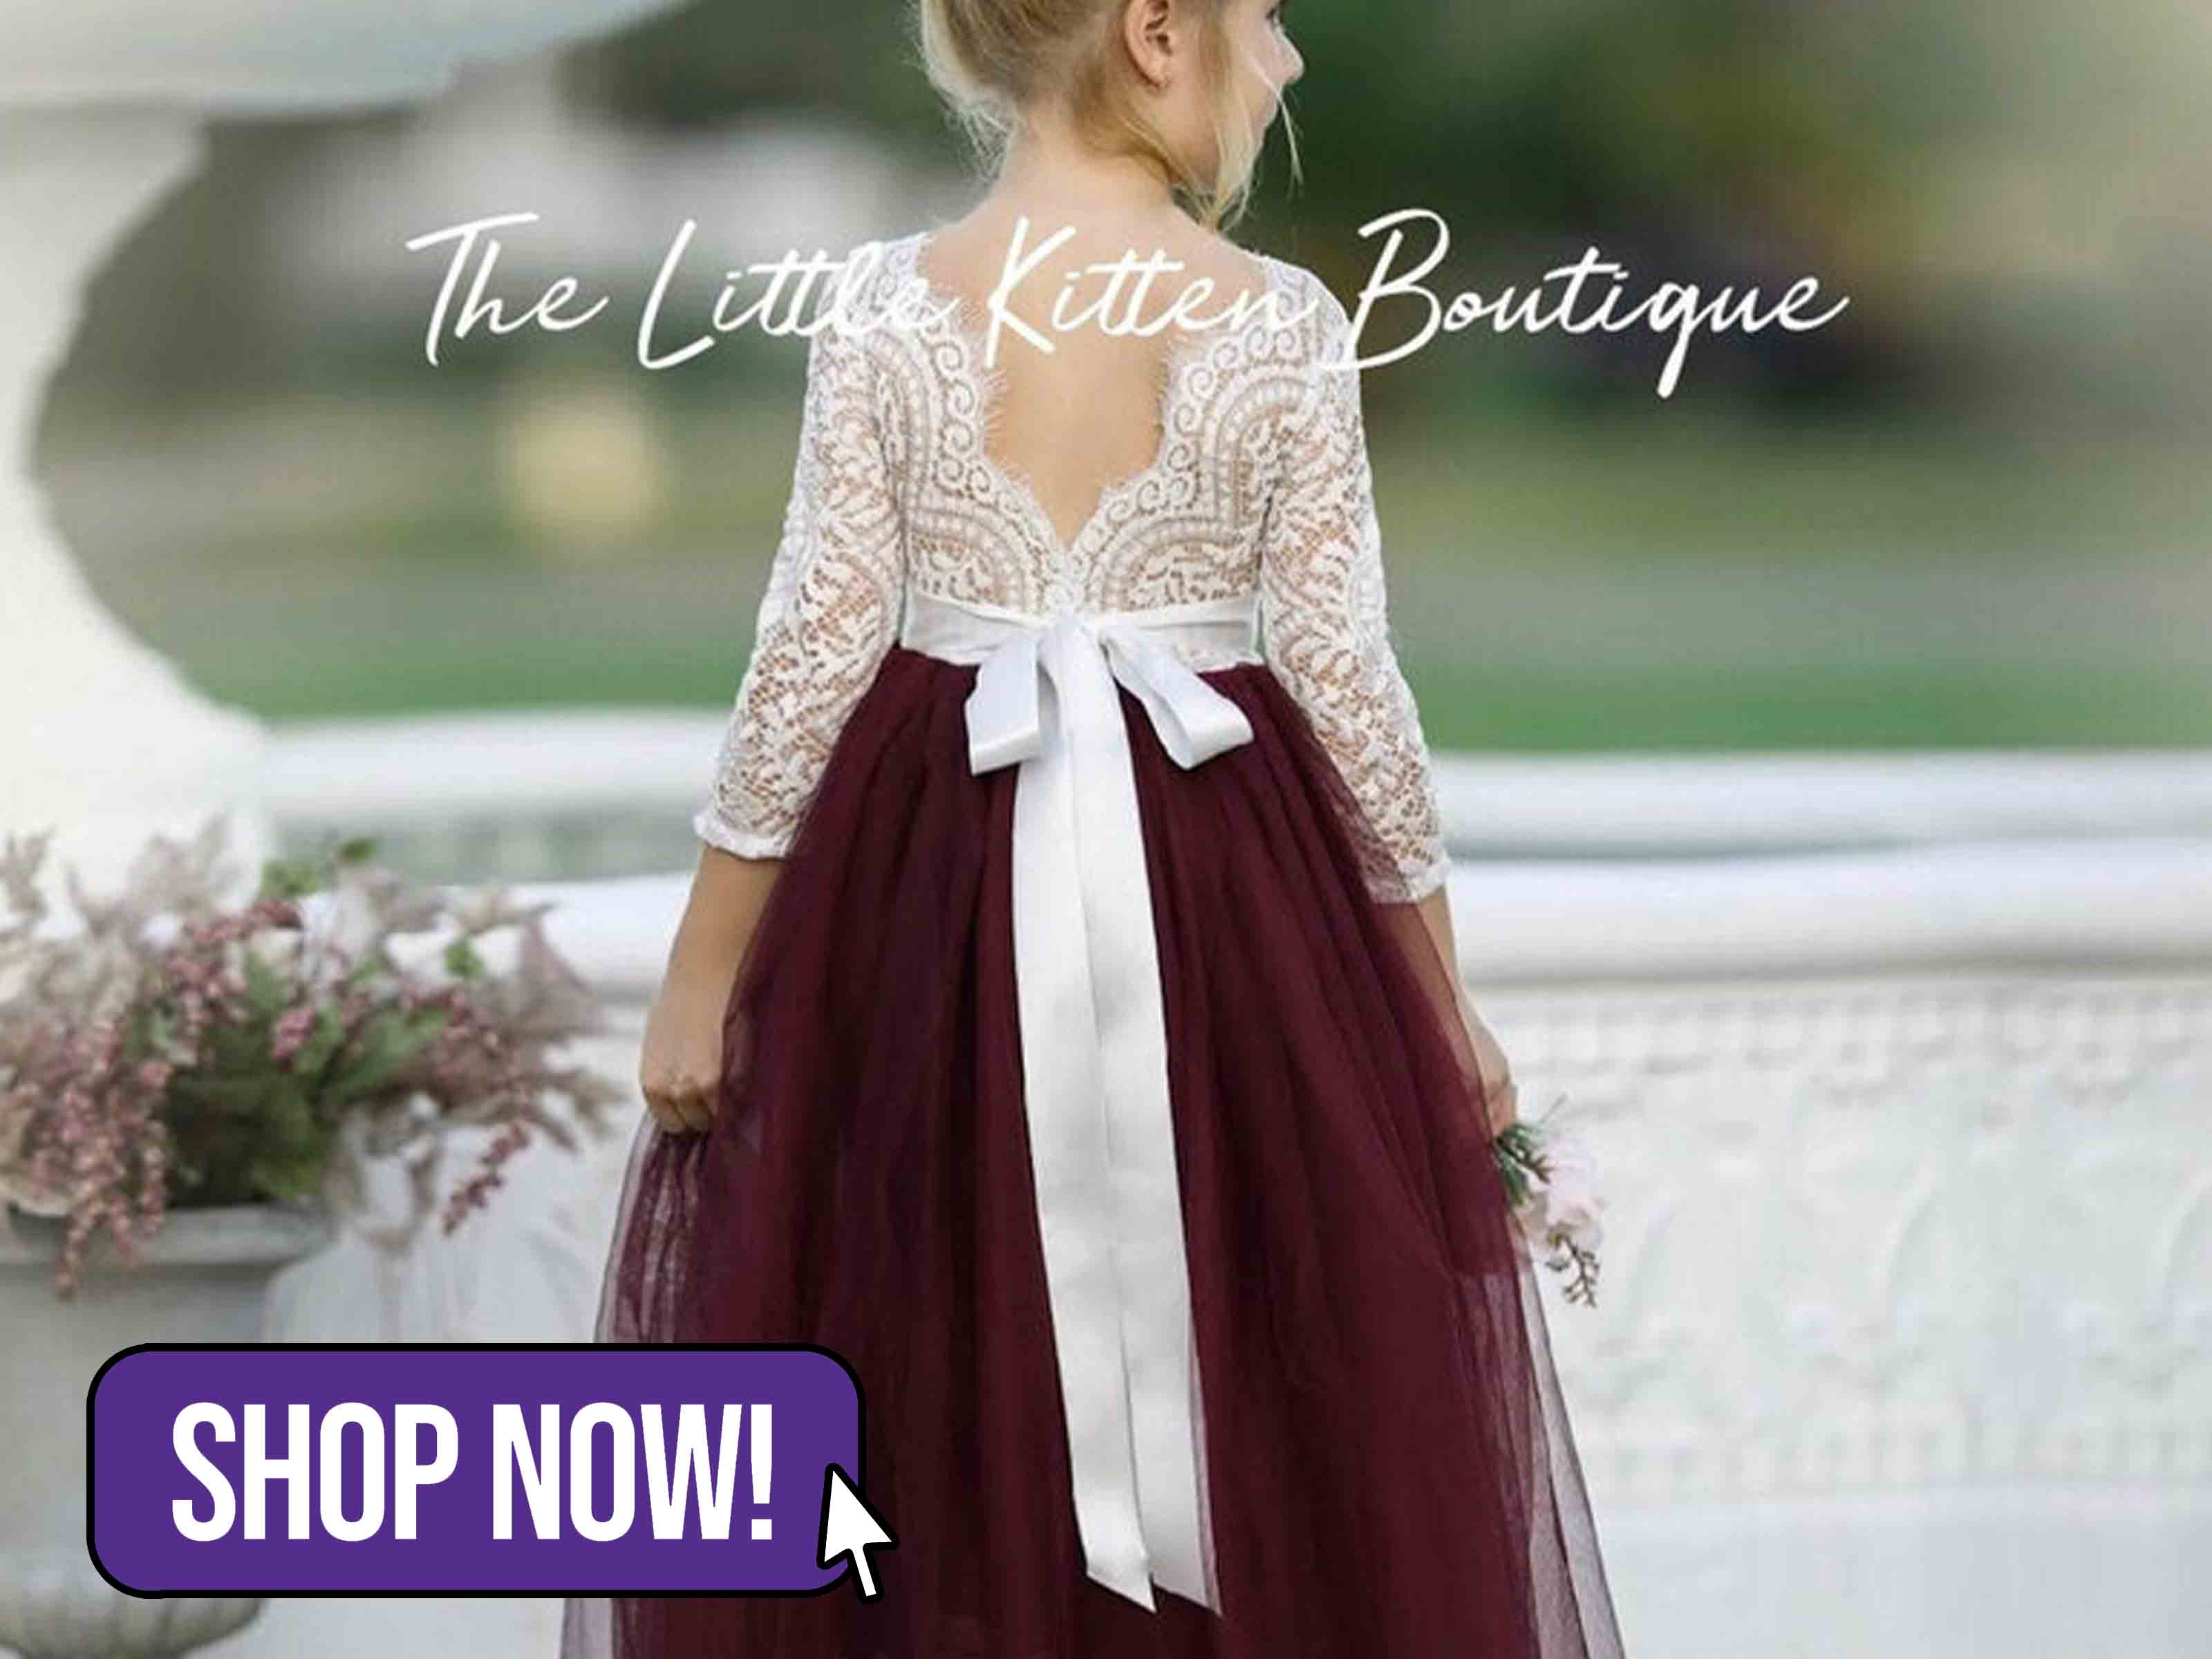 Rustic Lace Flower Girl Dress - Thelittlekitten23